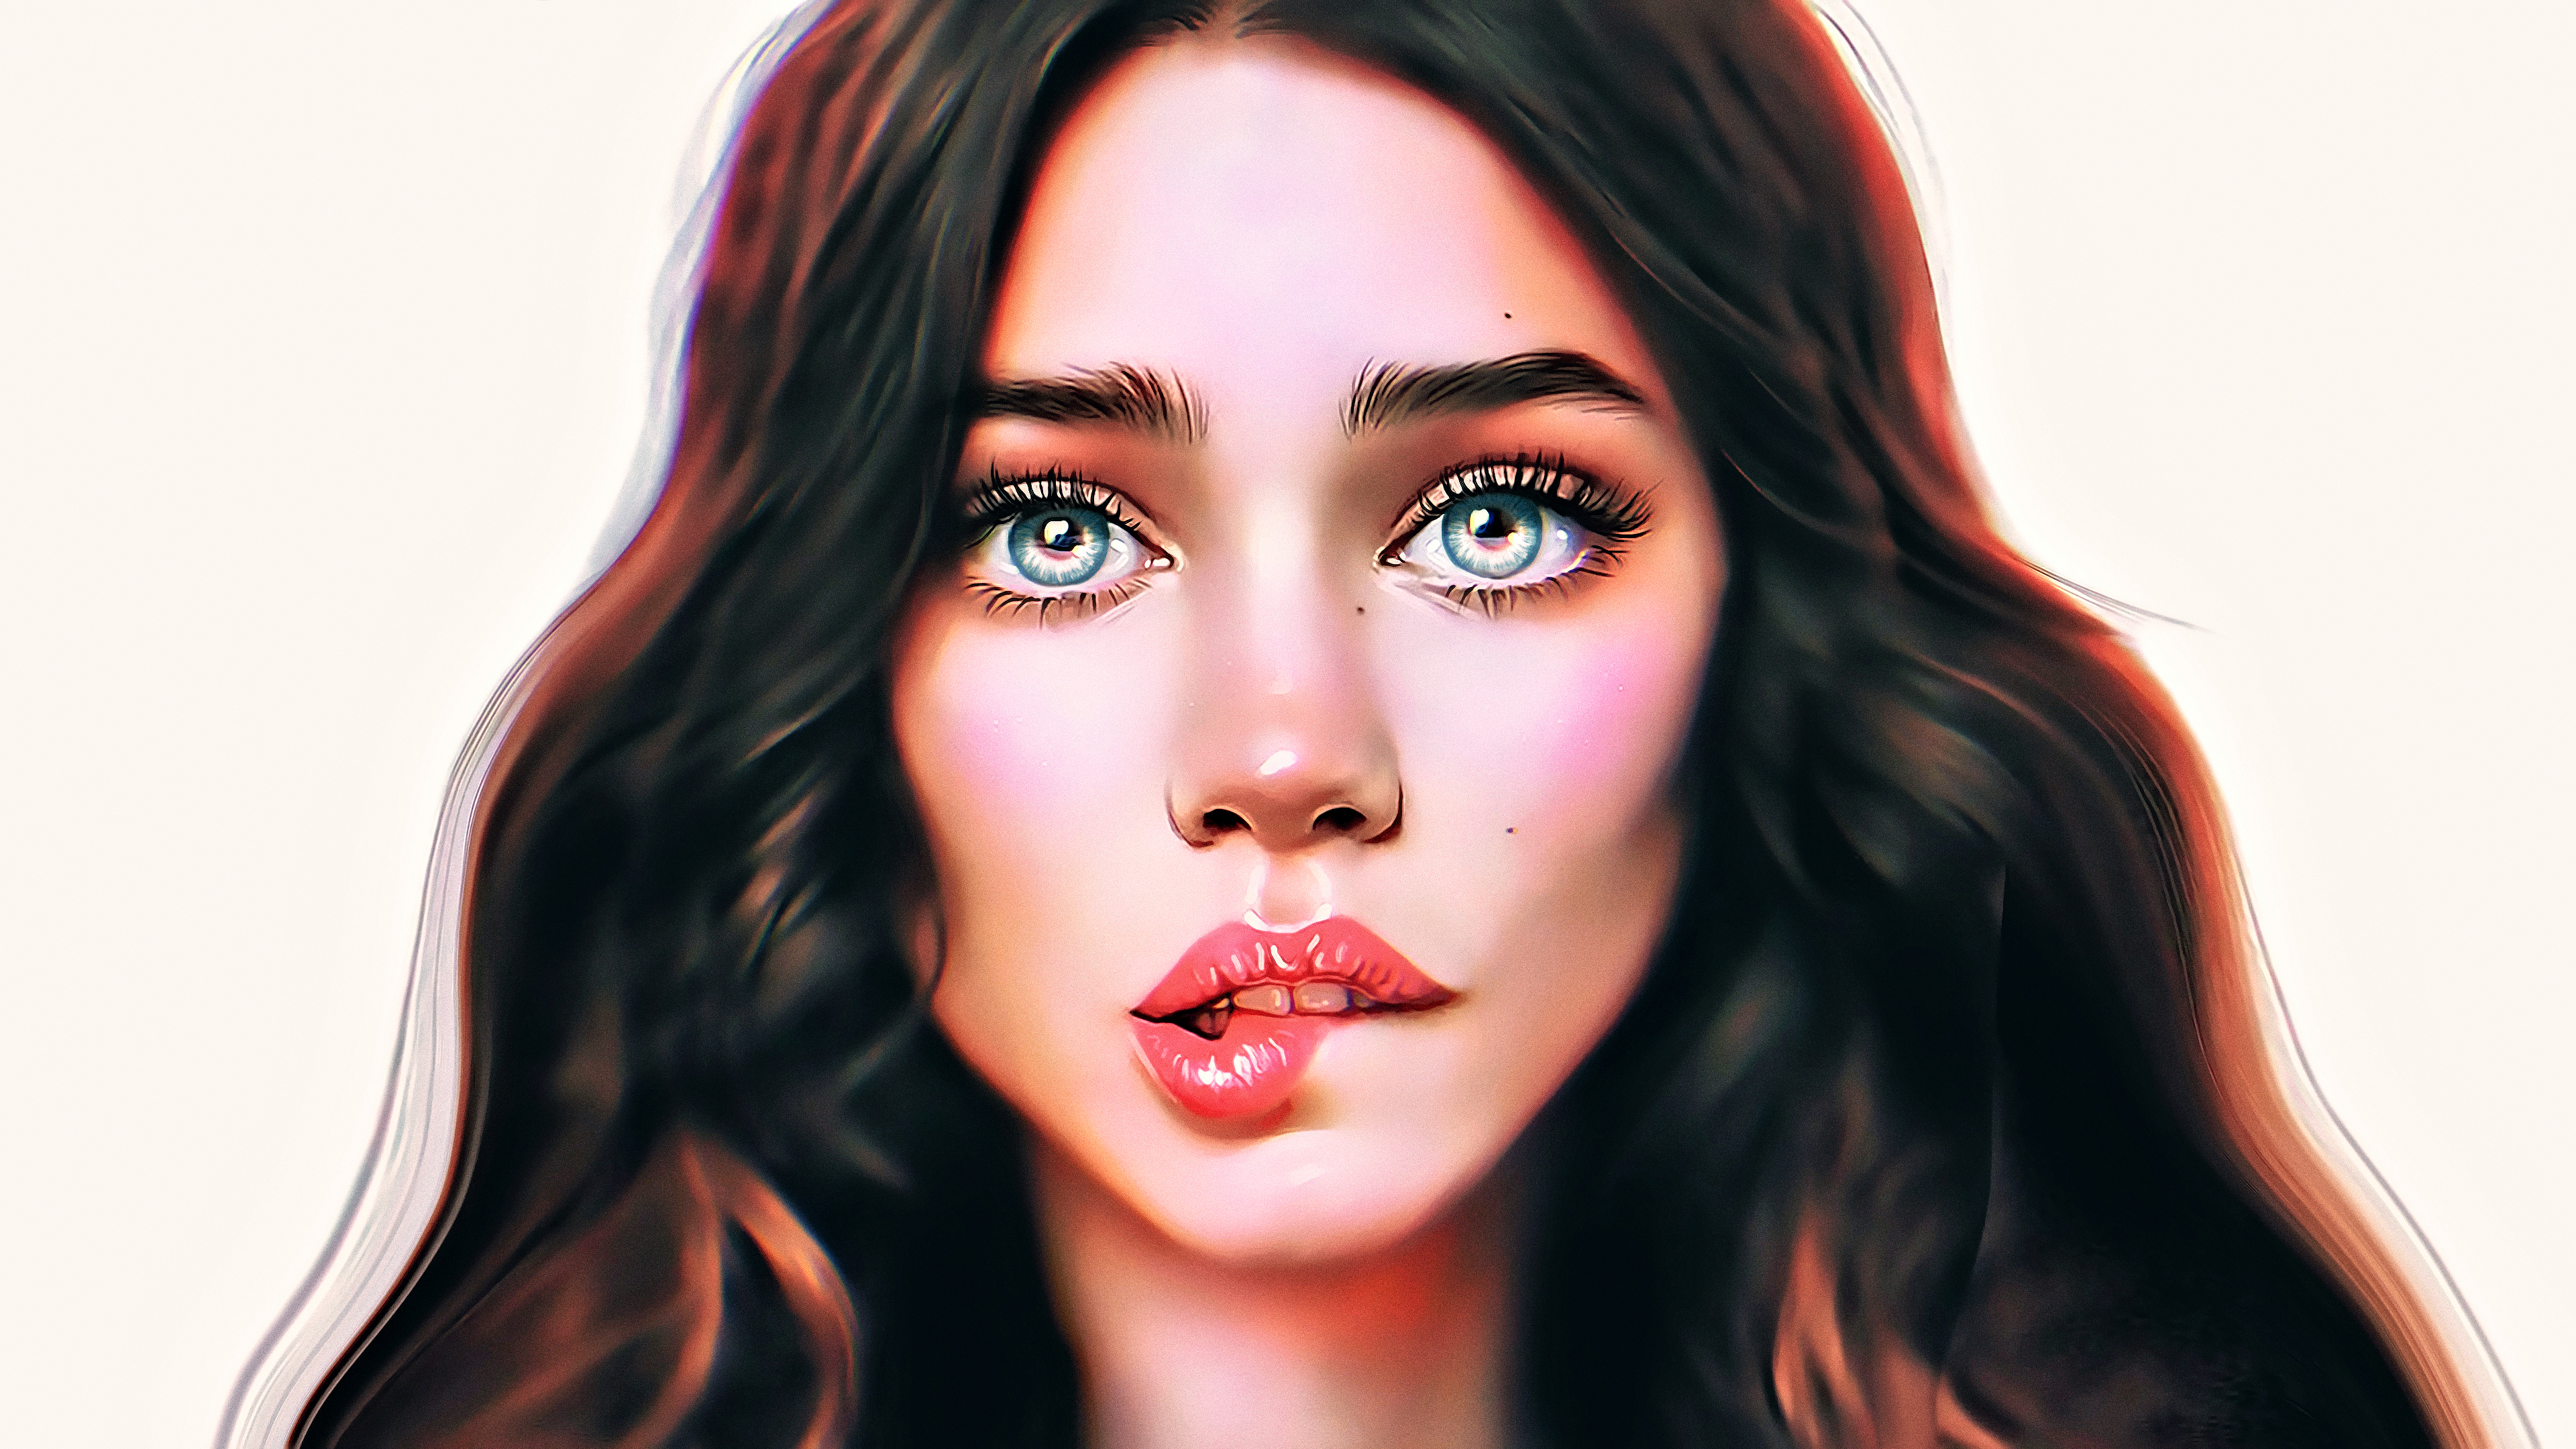 General 3840x2160 women portrait people face science fiction digital art concept art artwork fantasy art fan art CGI fantasy girl painting closeup hair in face realistic Photoshop blue eyes frontal view long hair white background red lipstick simple background biting lip